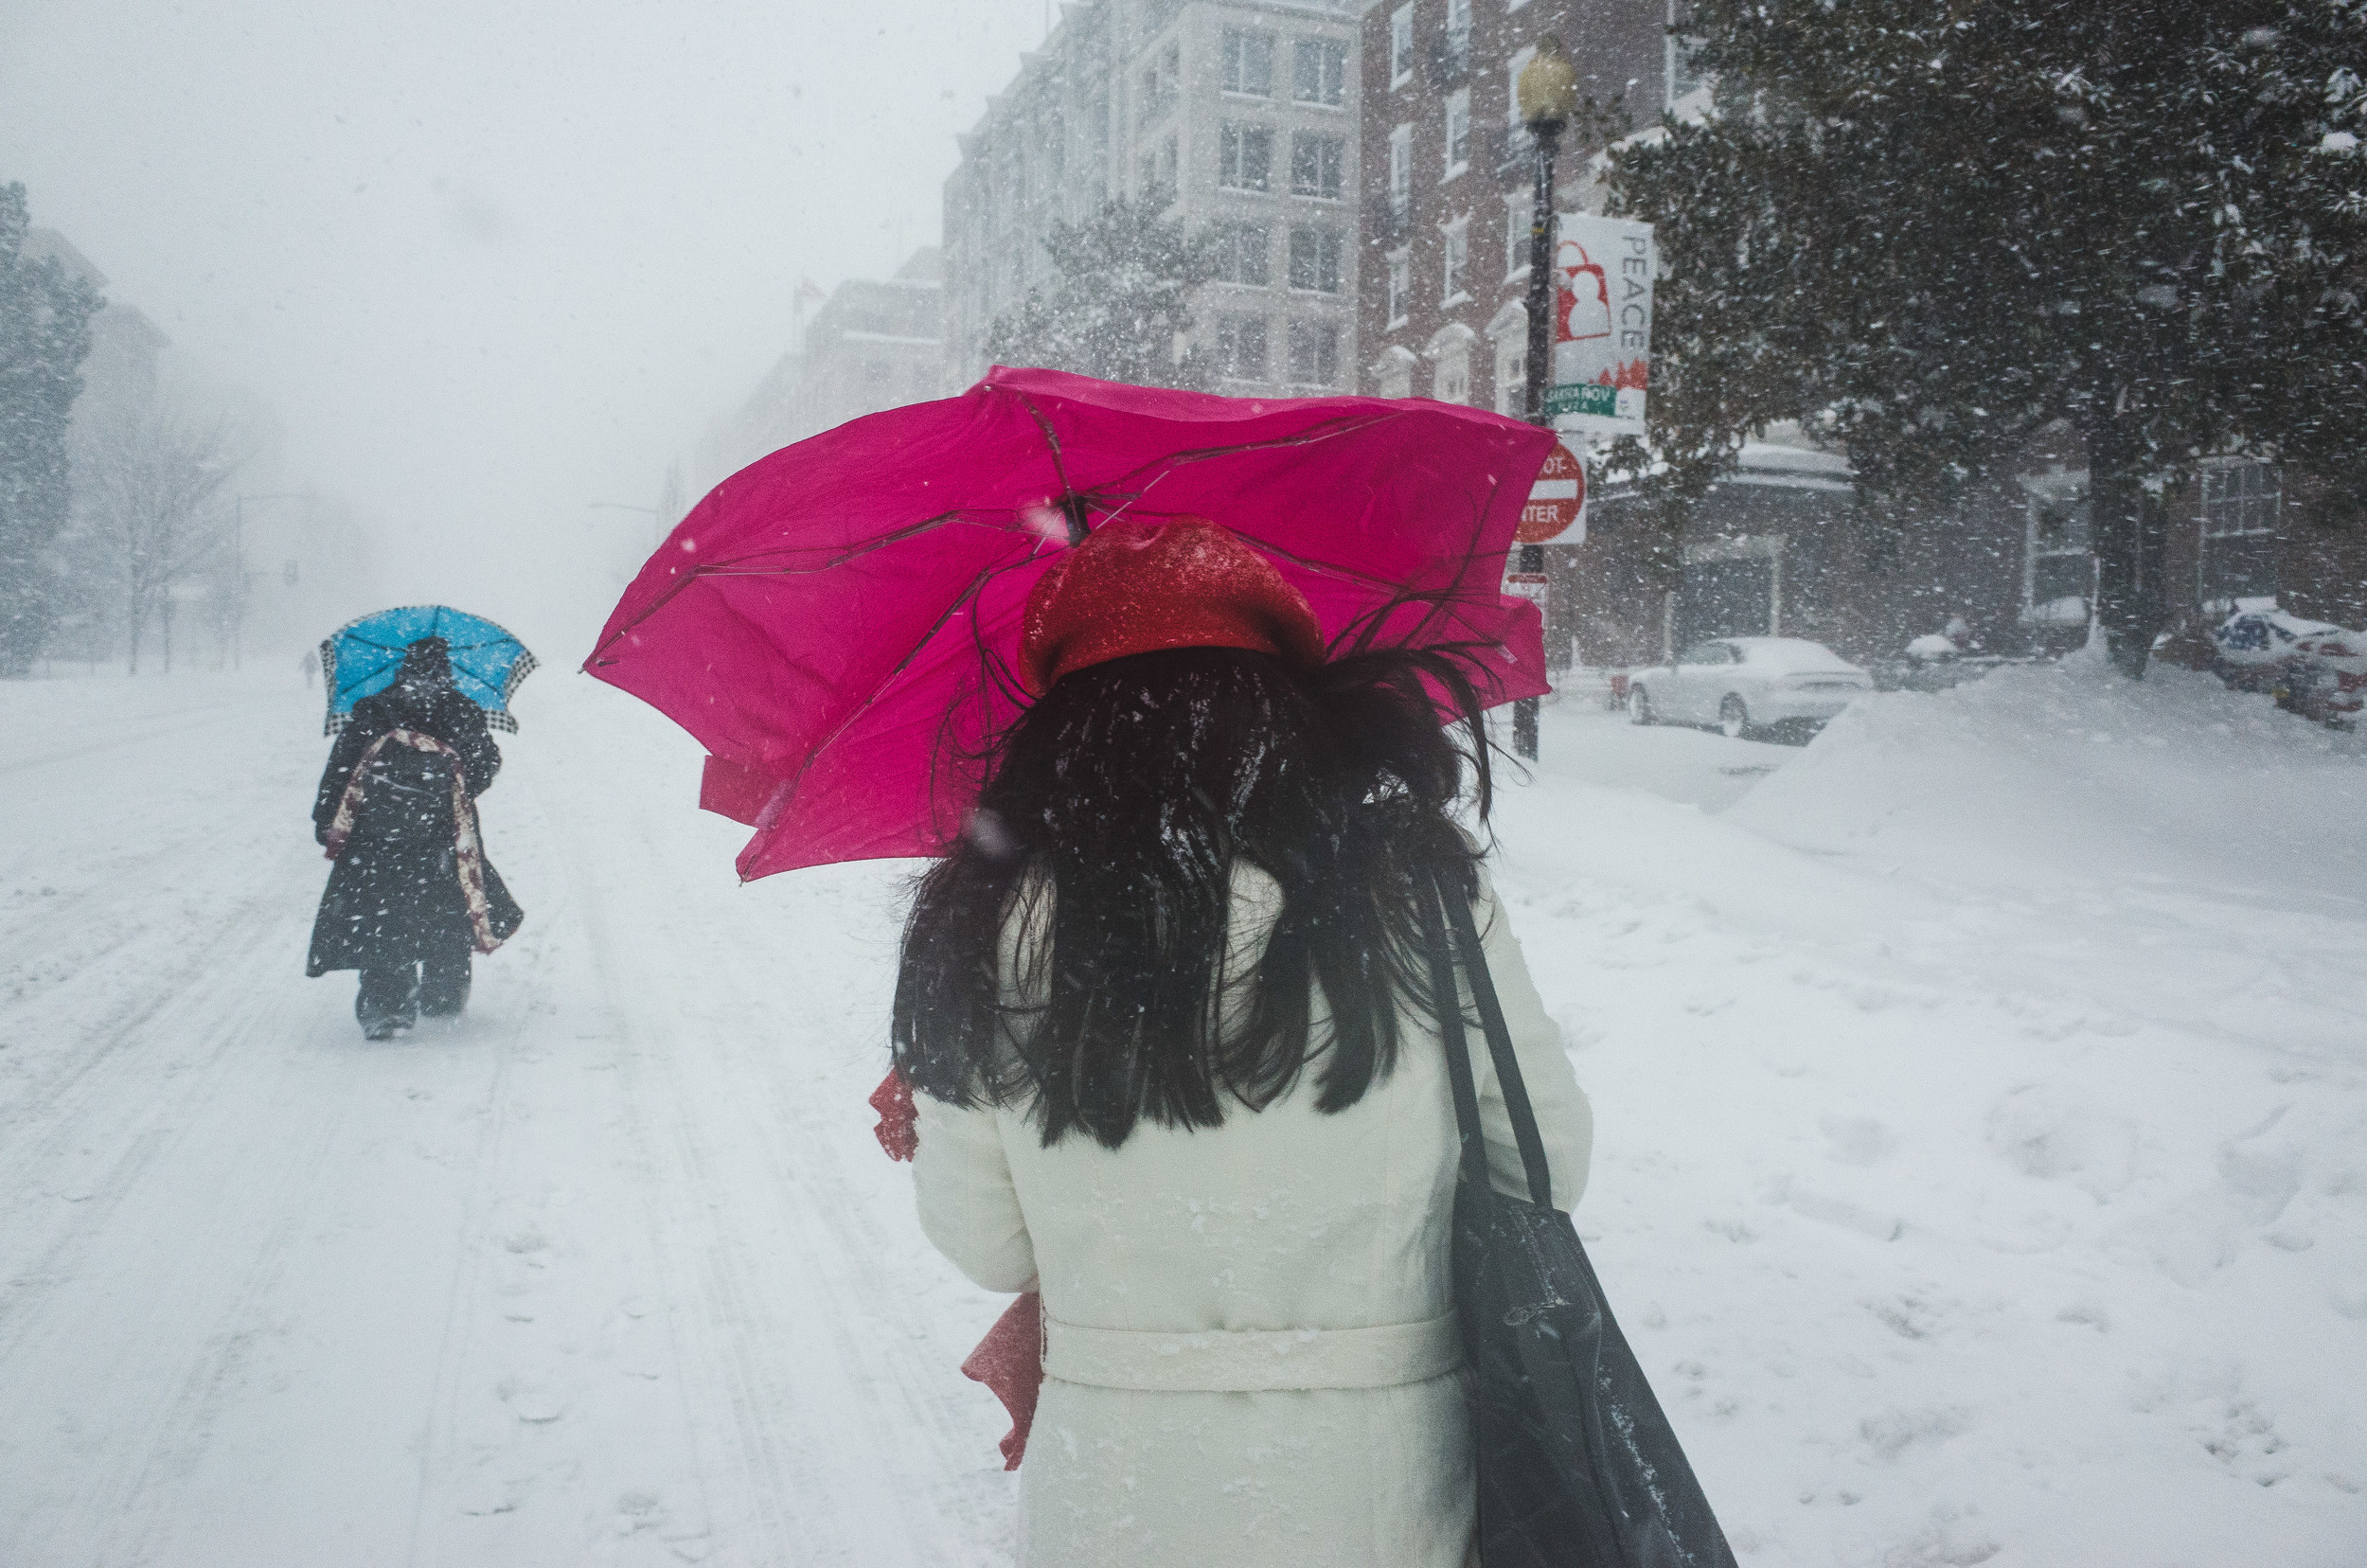 Blizzard Jonas Washington DC 2016 Photographer Mantas Kubilinskas-21.jpg